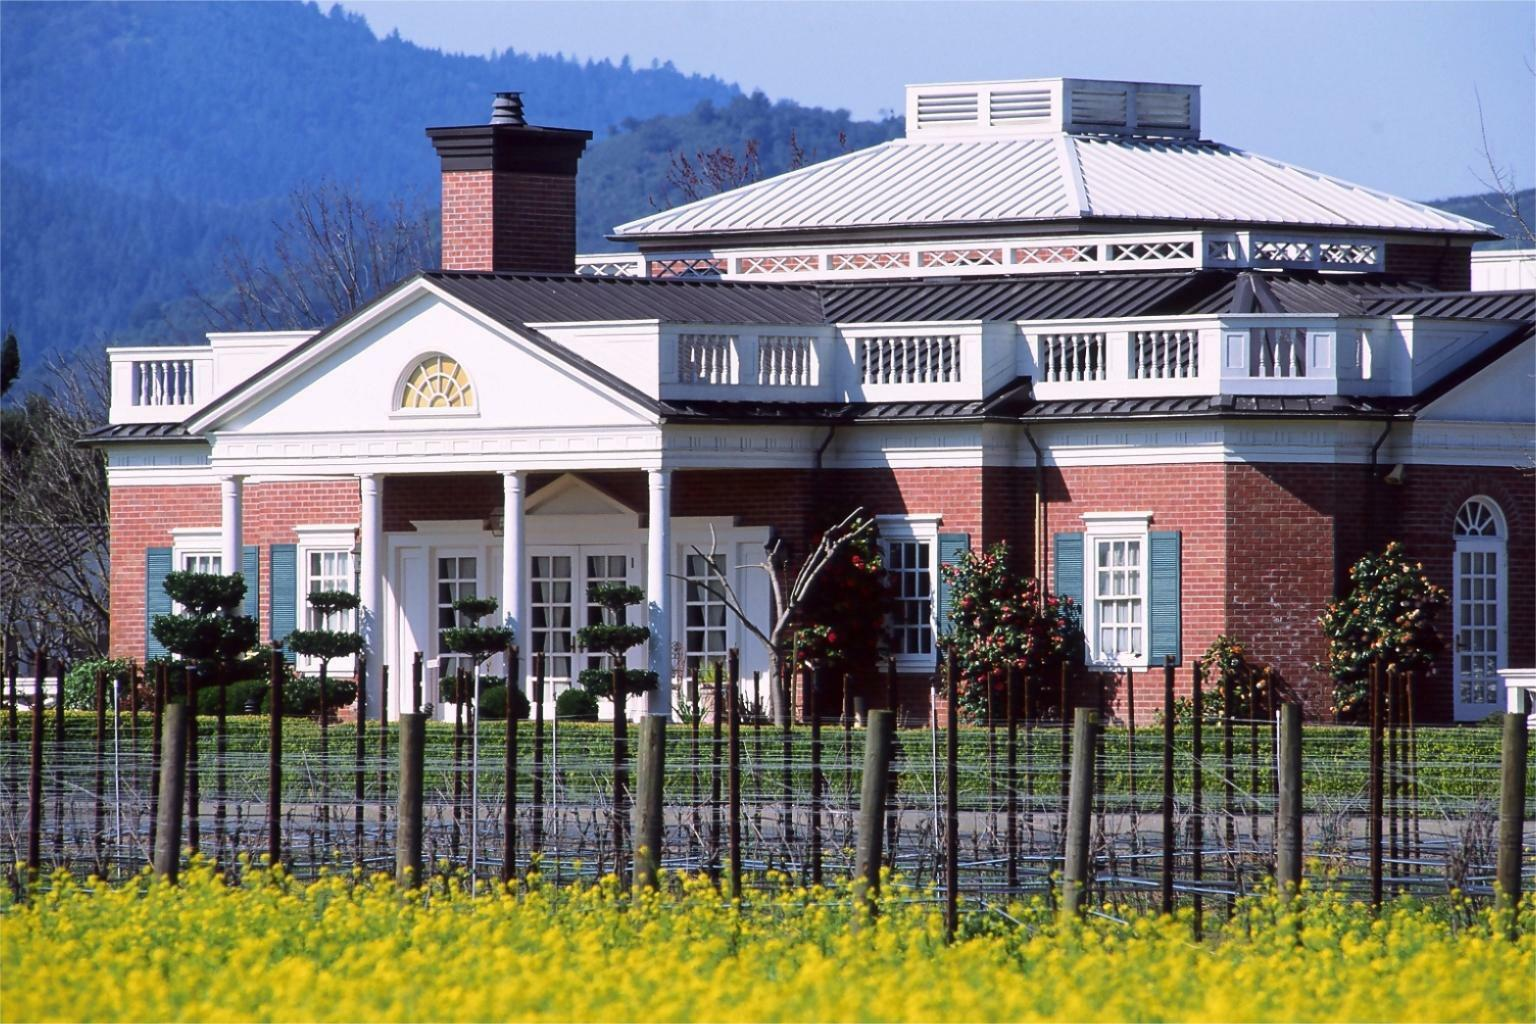 Corley Family Napa Valley - Monticello Vineyards Cover Image